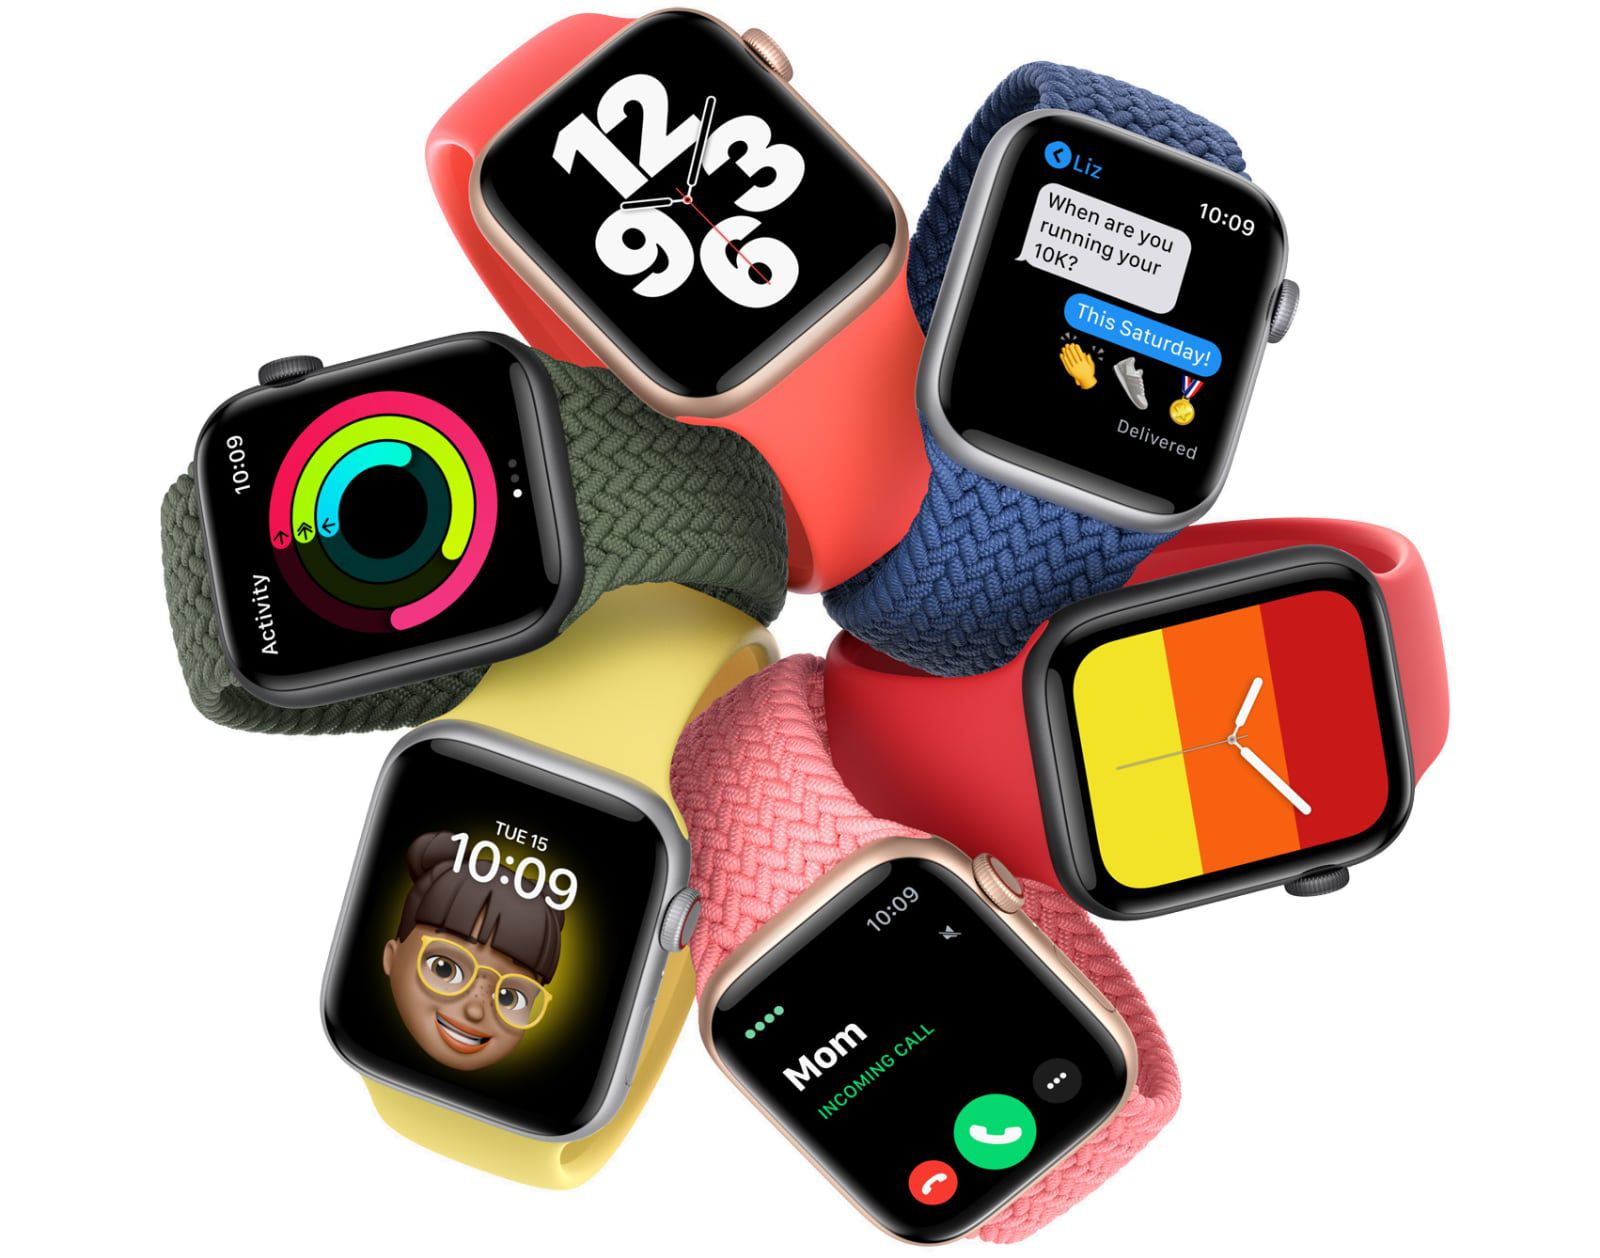 Apple's Wearables, Home and Accessories Category Sets All-Time Revenue  Record of $7.9 Billion - MacRumors